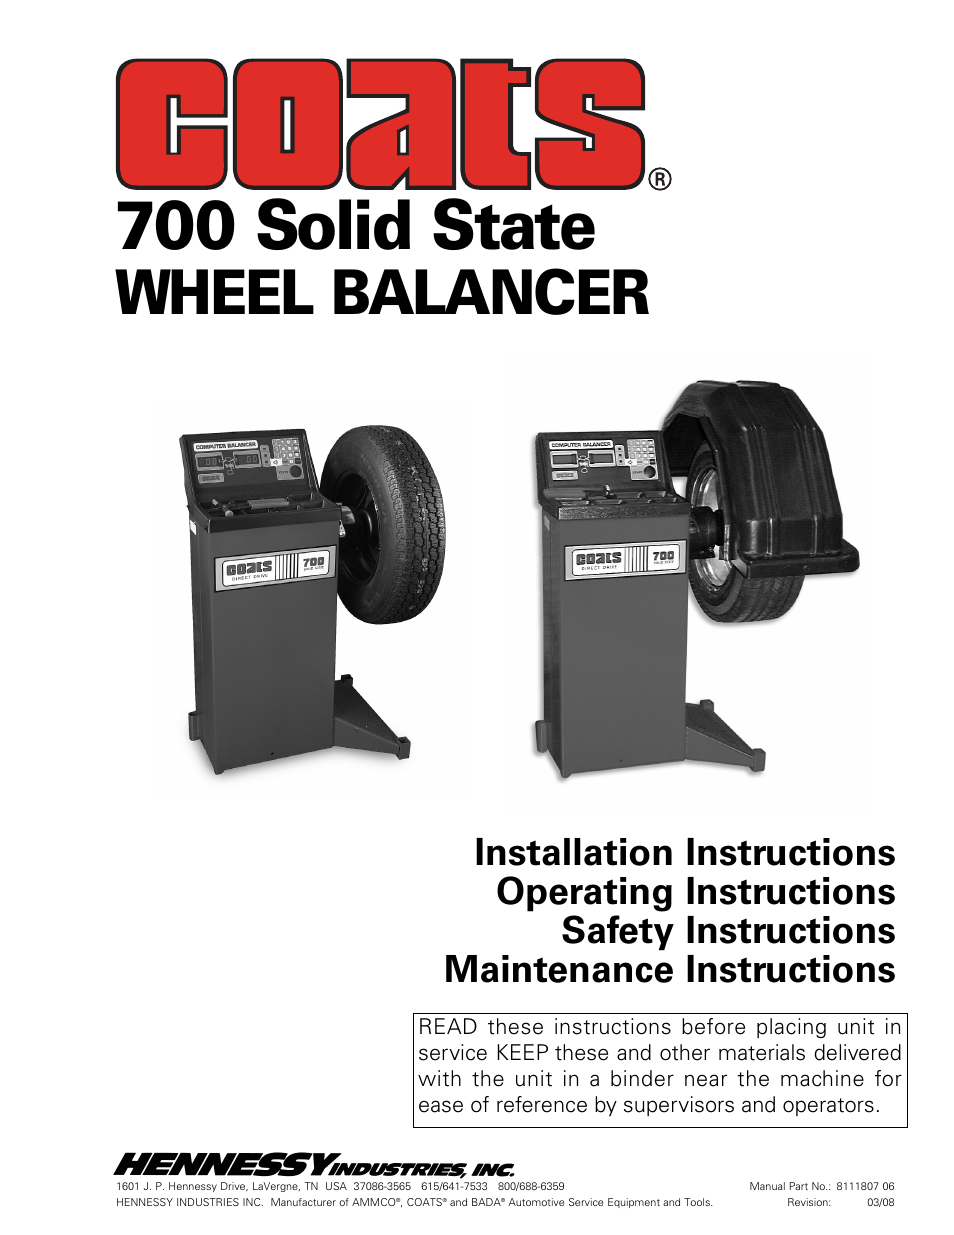 coats 700 solid state wheel balancer user manual 16 pages rh manualsdir com coats 700 tire balancer parts coats 700 wheel balancer parts